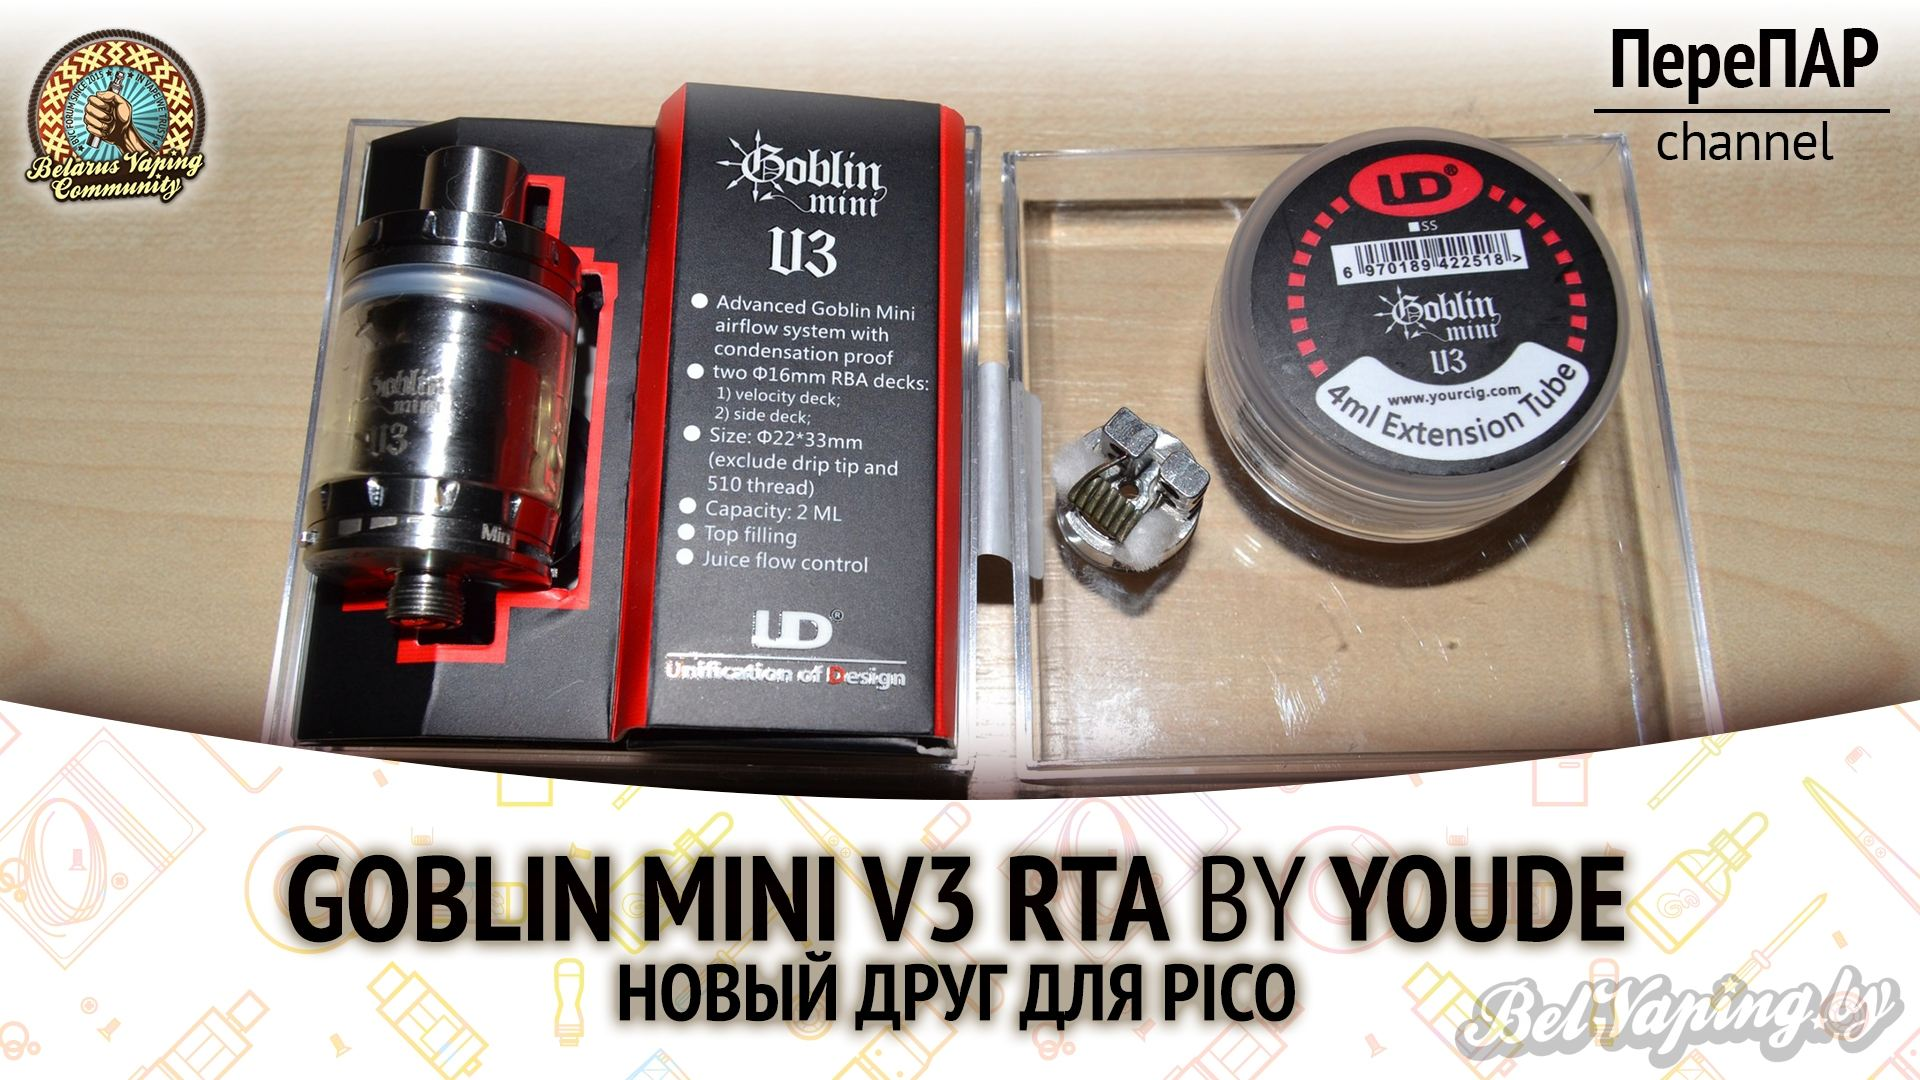 Обзор Goblin Mini V3 by YouDe